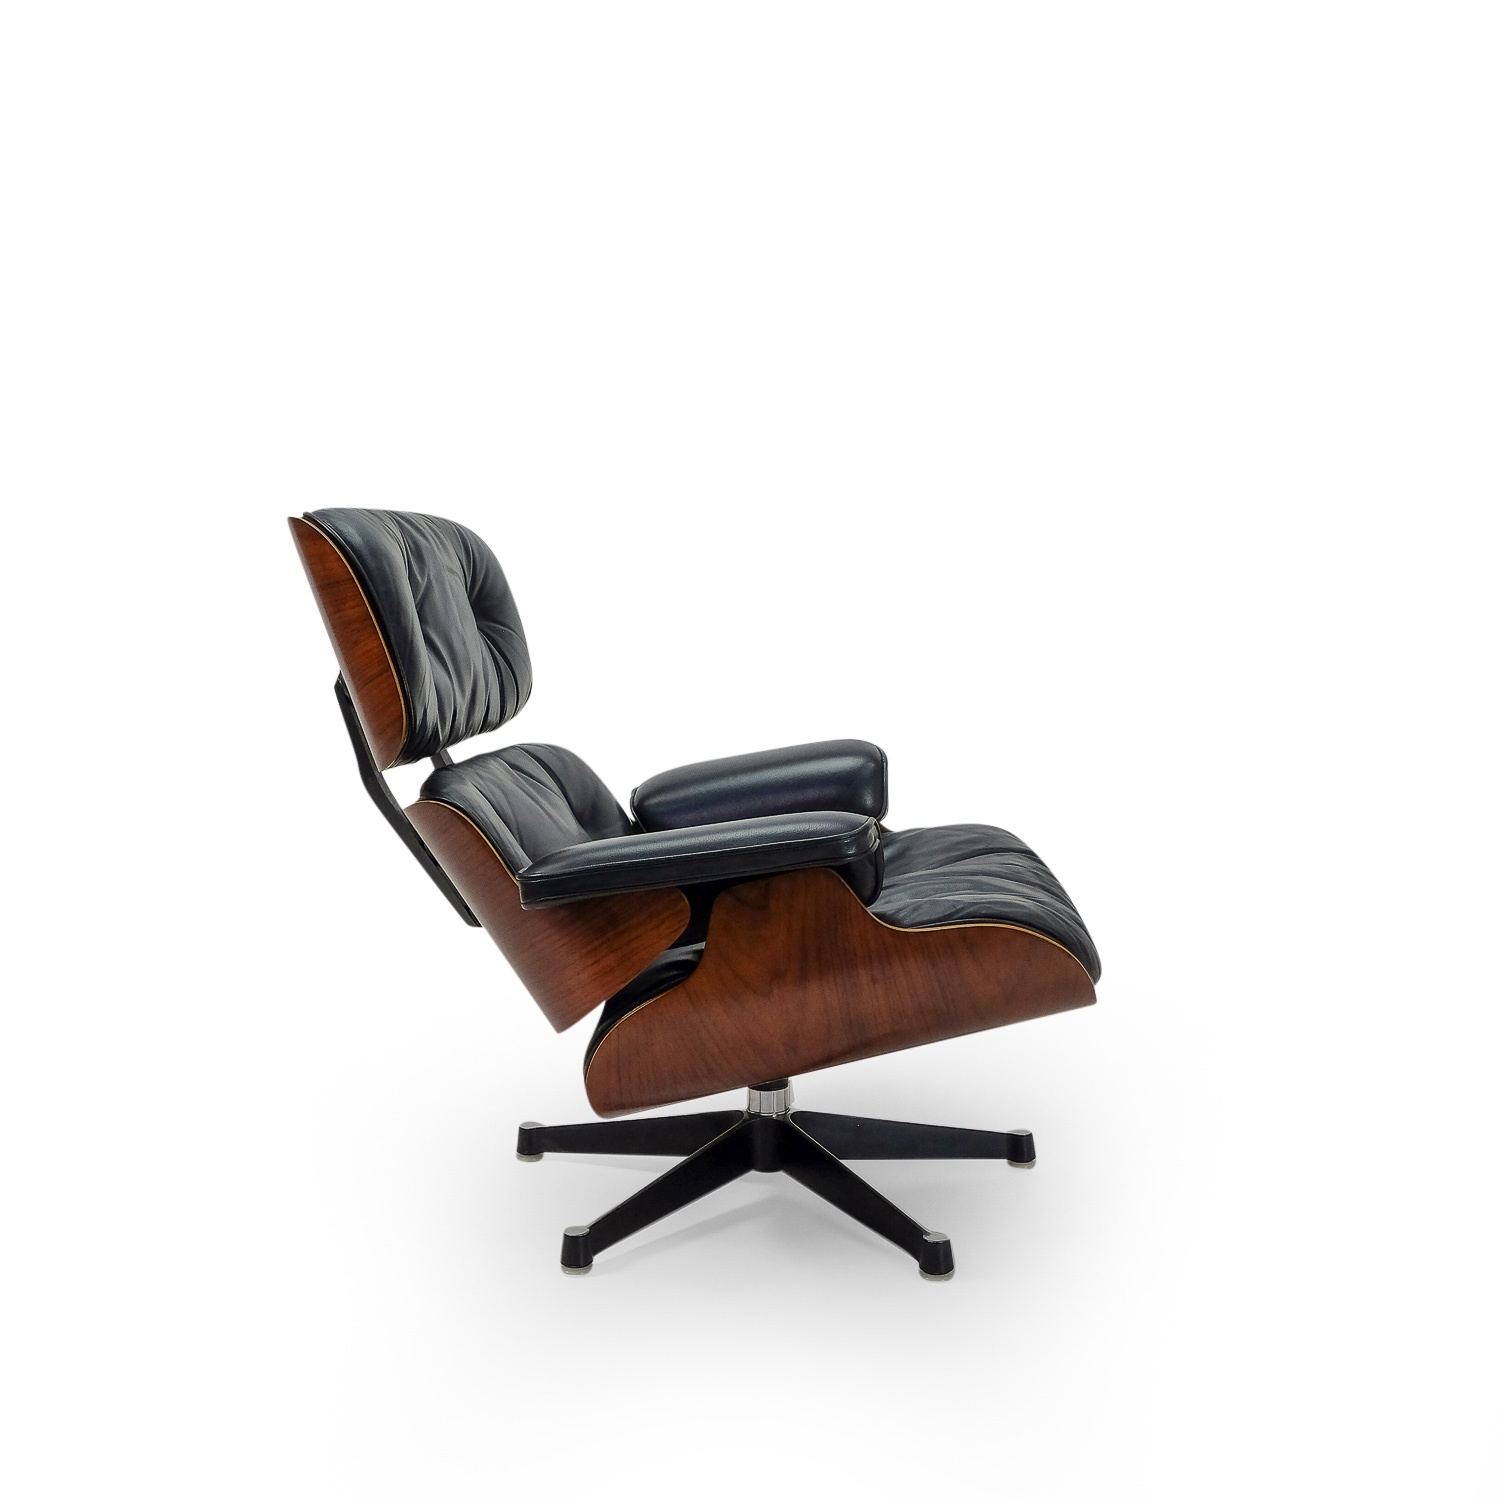 Early Chair Vitra1960s Lounge By Sympledesign Eames OlPXZukiwT